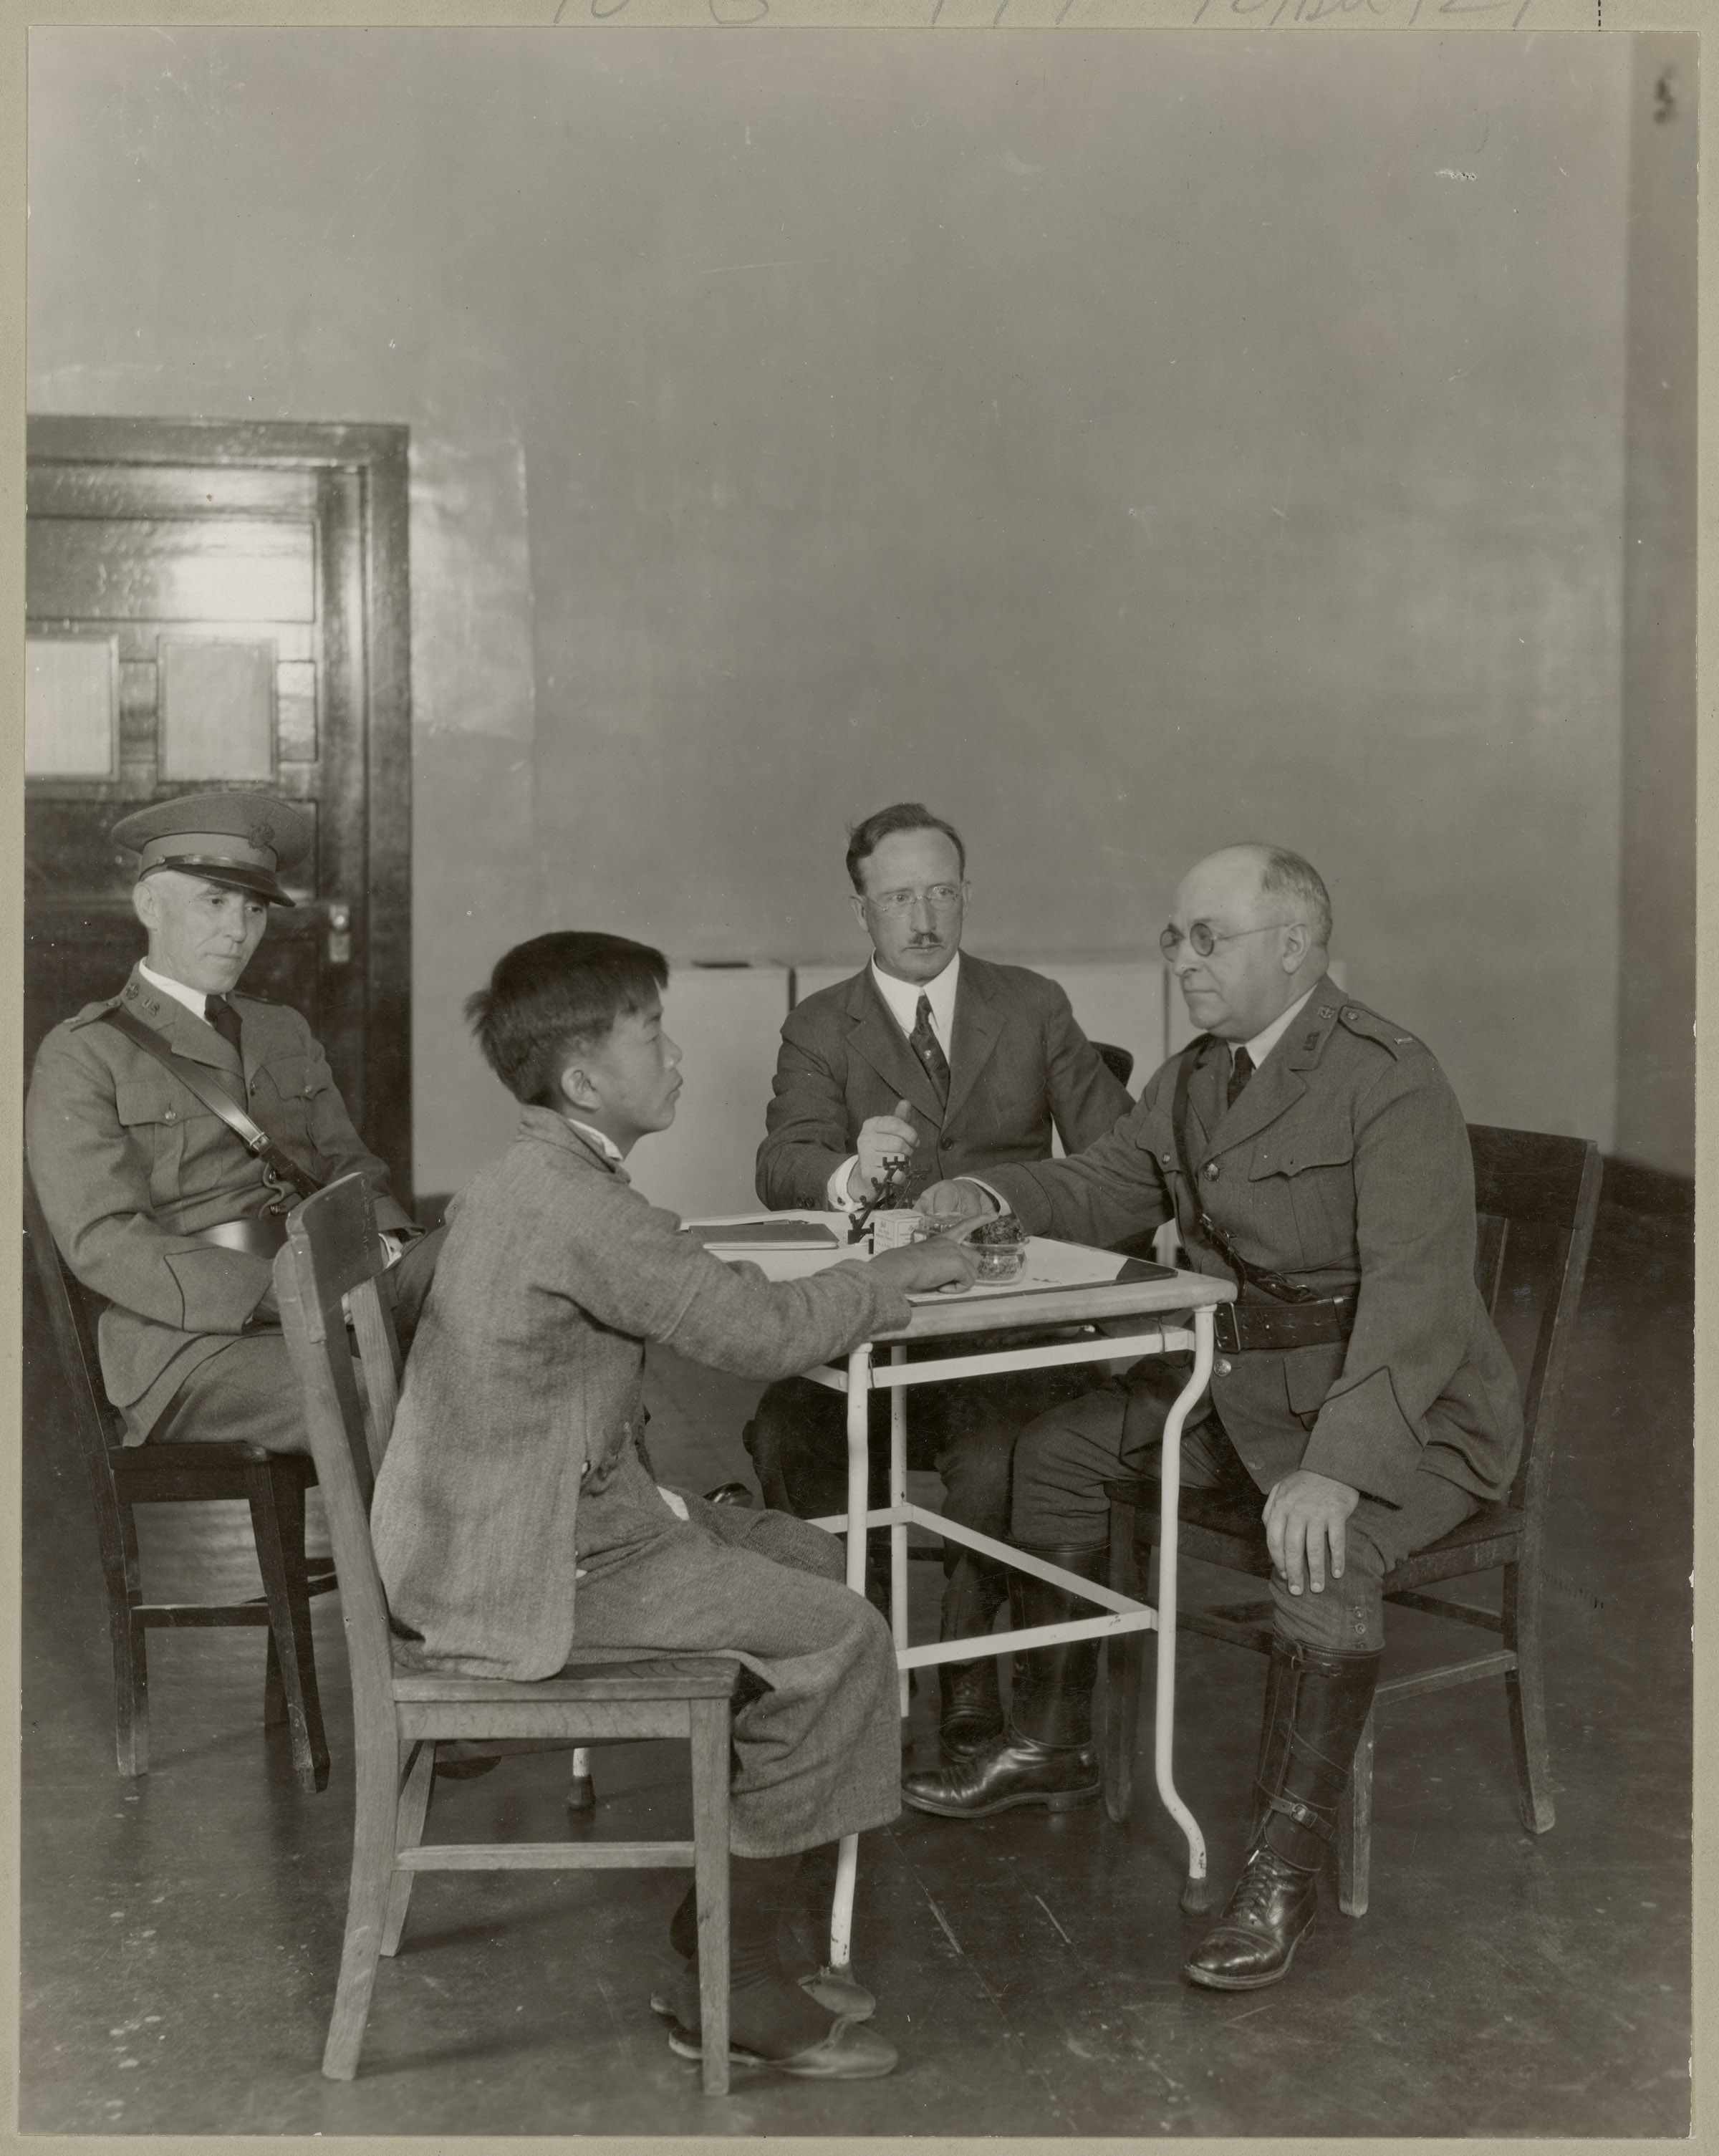 1923 photo of Chinese immigrant undergoing immigration interview with three US officials on Angel Island